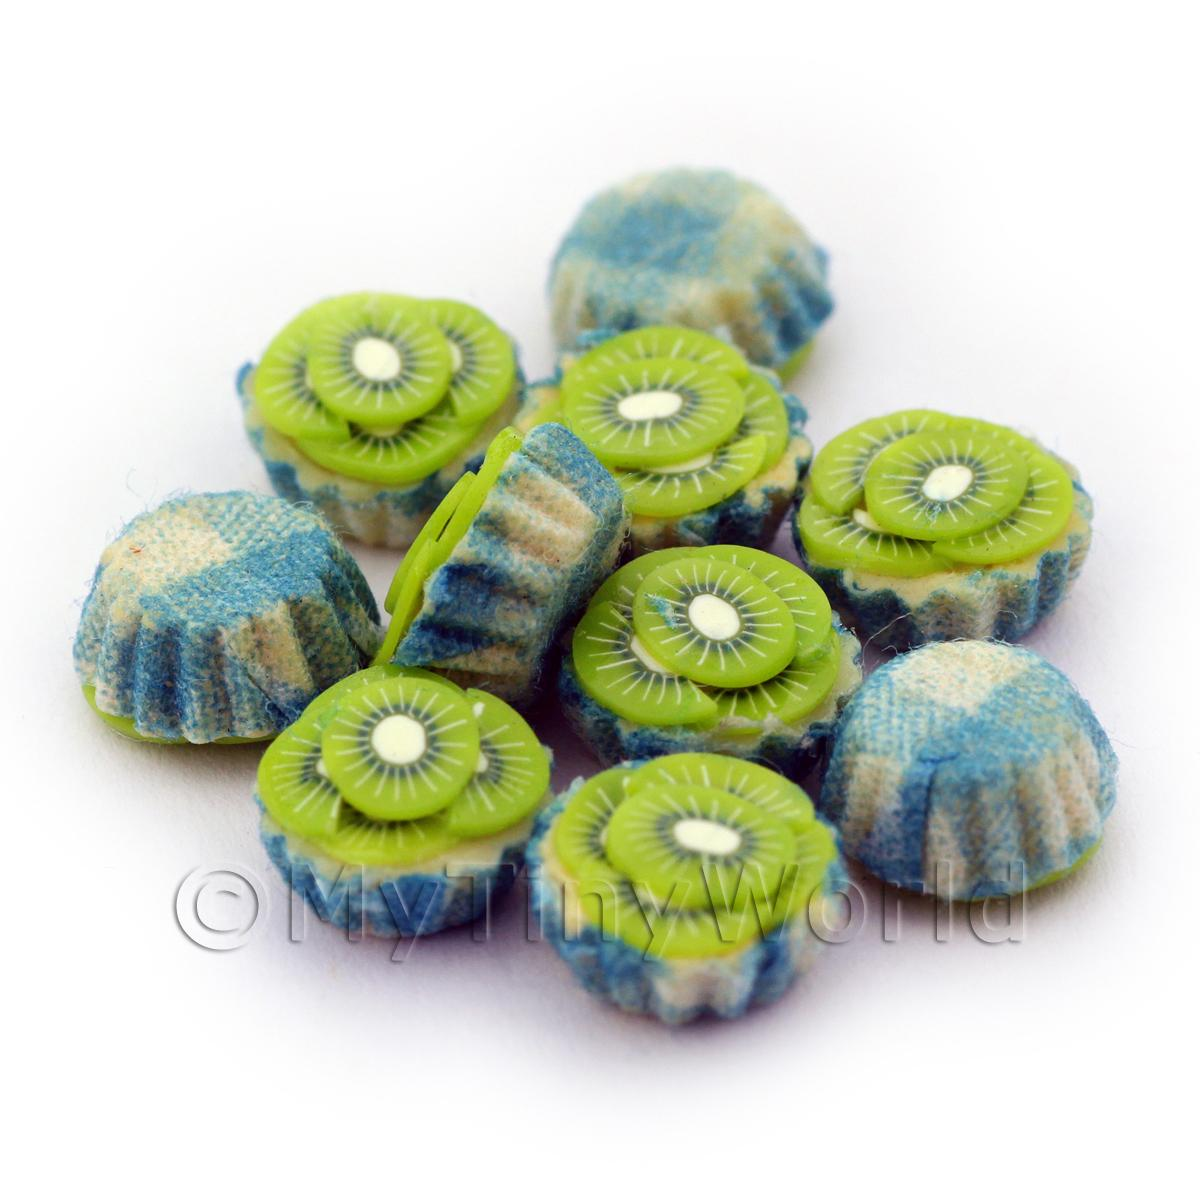 Miniature Kiwi And Cream Cupcake With A Blue Paper Cup